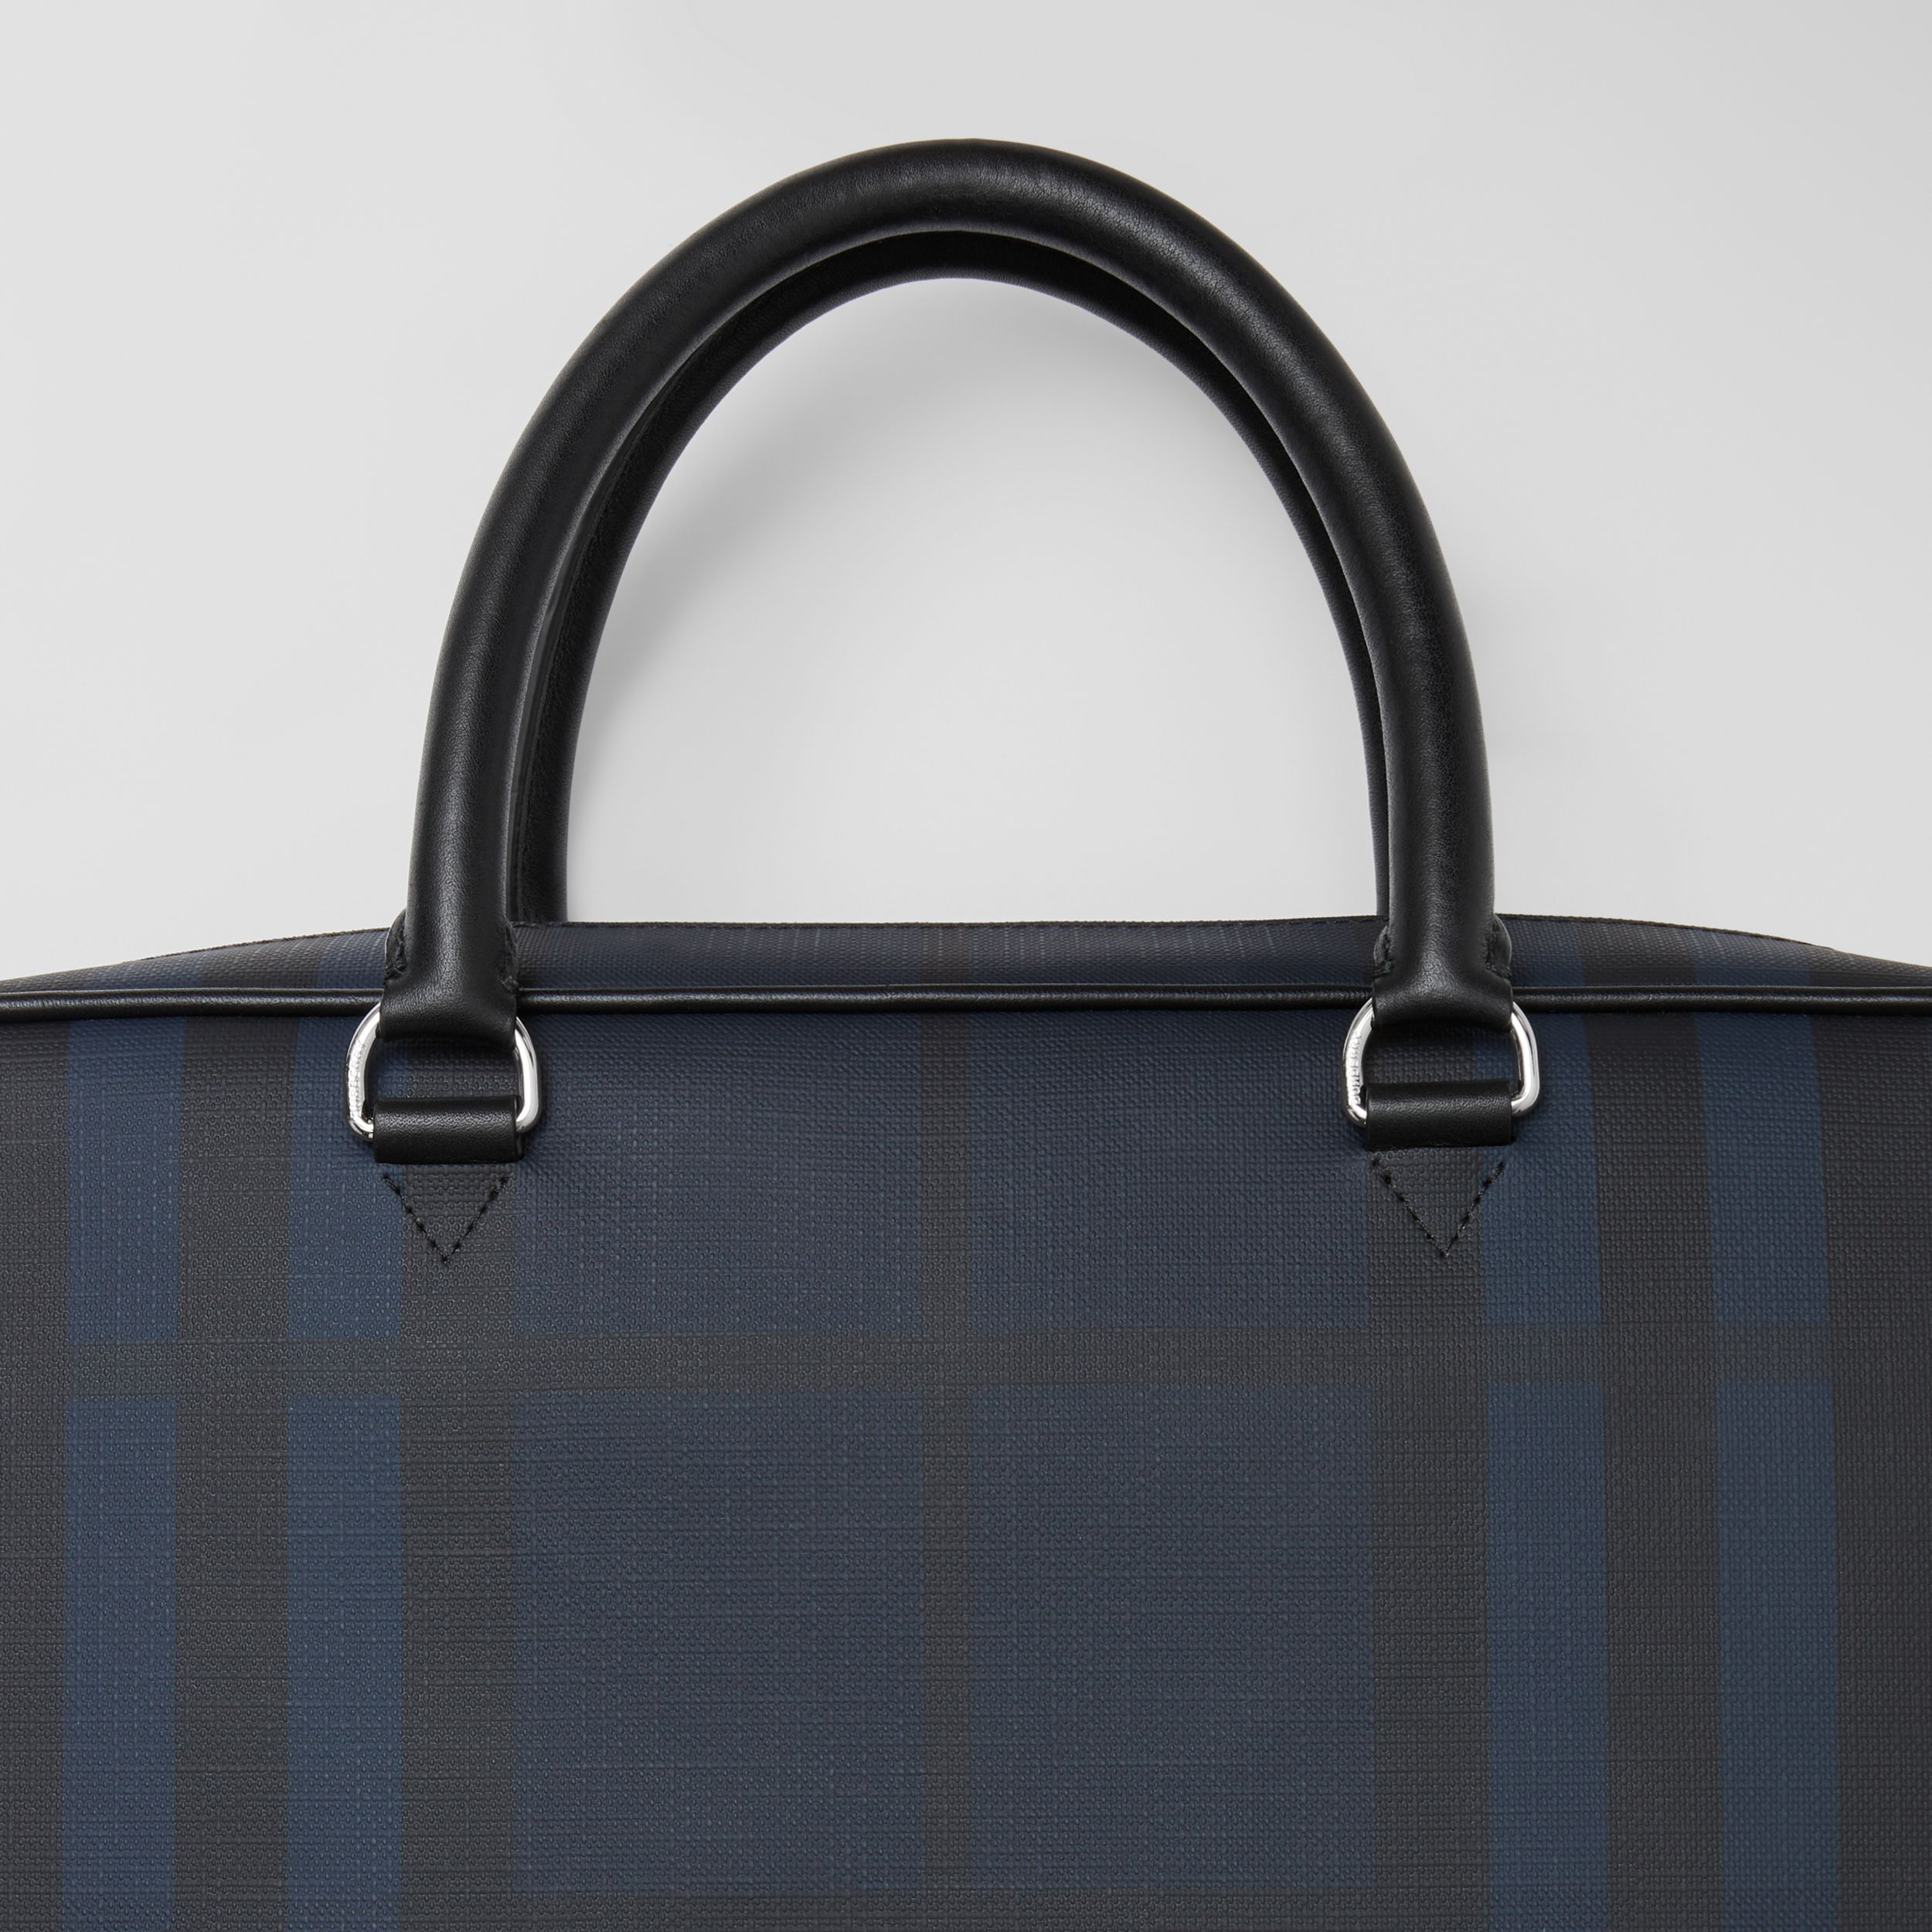 London Check and Leather Briefcase in Navy - Men | Burberry - 2